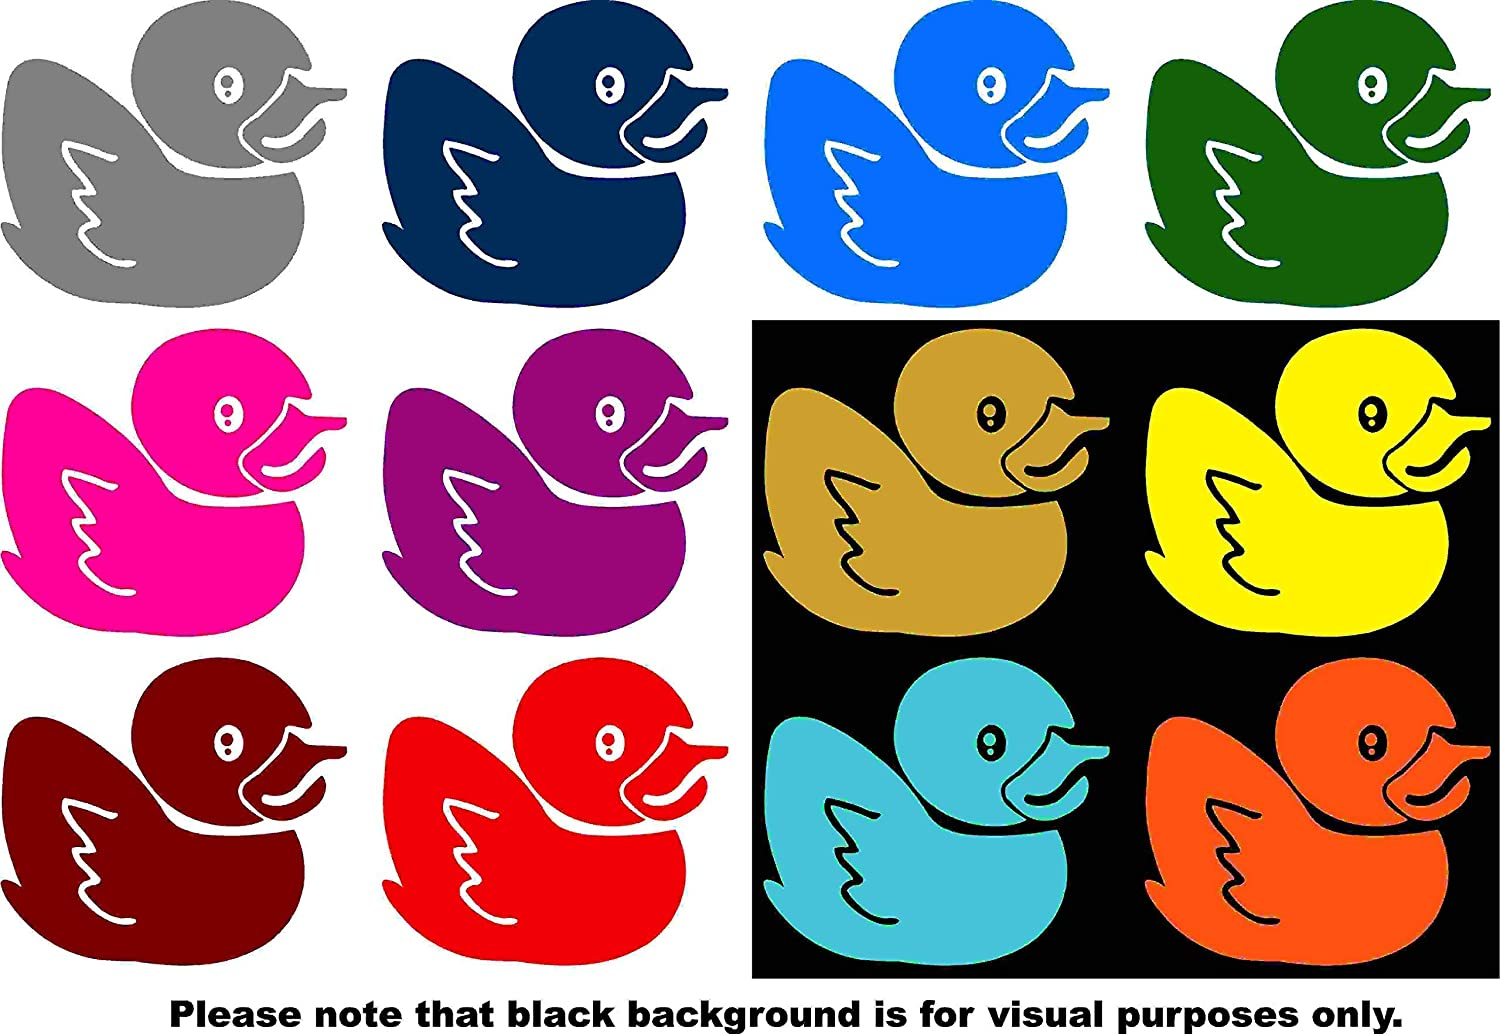 Animal Rubber Ducky Car Window Tumblers Wall Decal Sticker Vinyl Laptops Cellphones Phones Tablets Ipads Helmets Motorcycles Computer Towers V and T Gifts